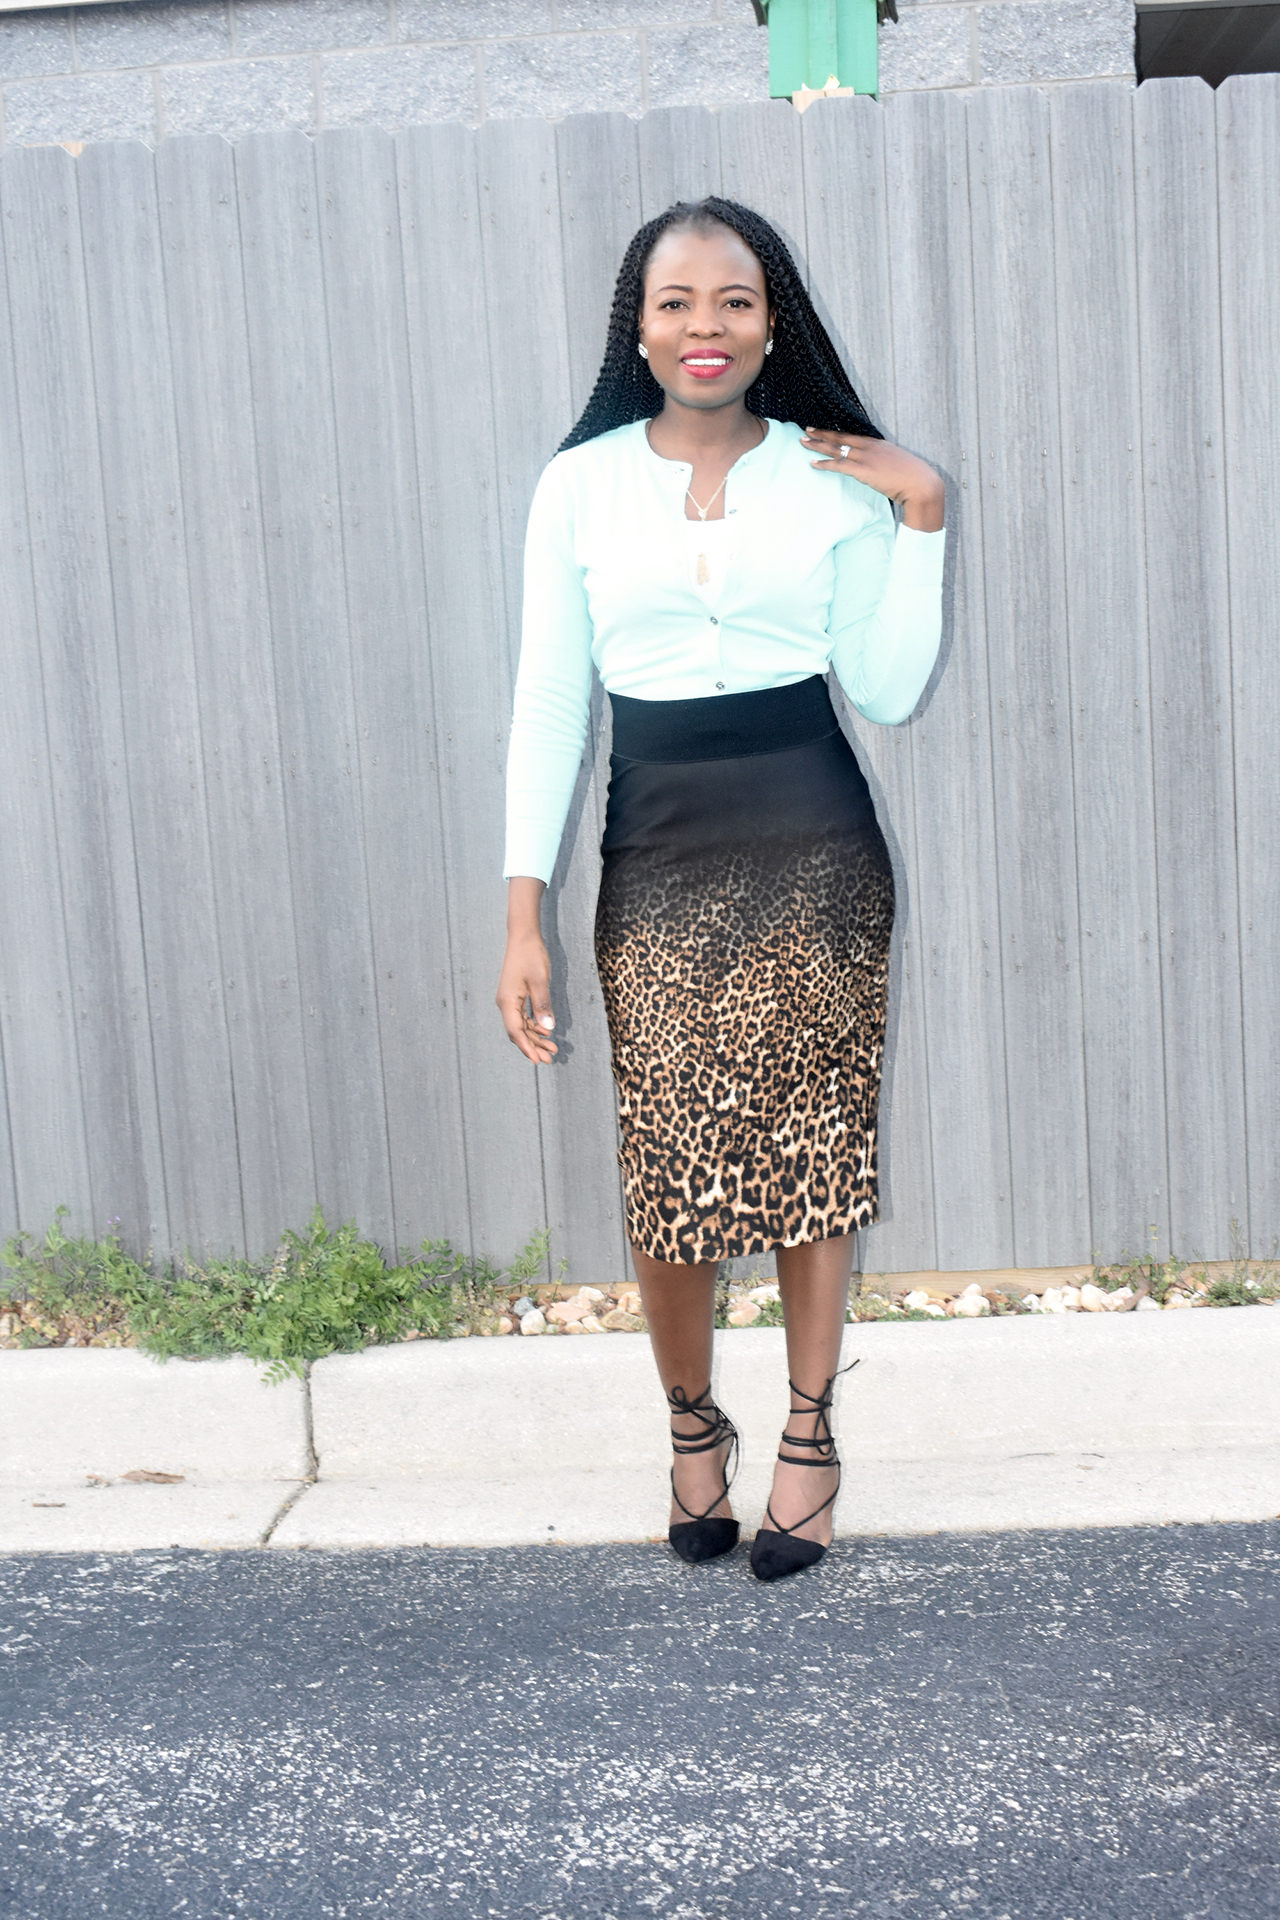 Mint green Cardigan + leopard print skirt graphic